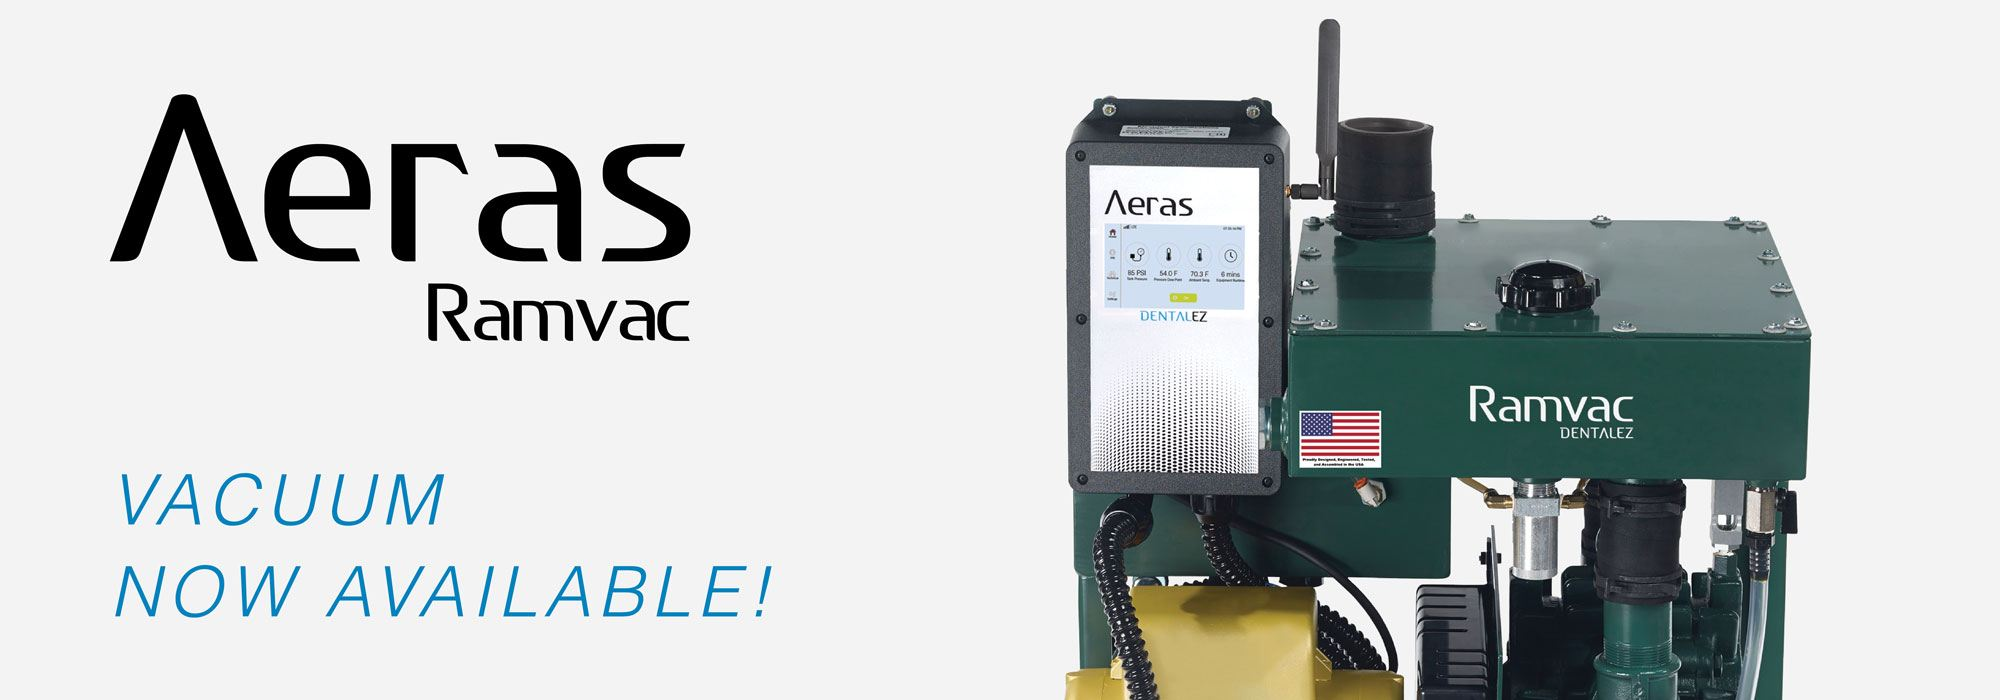 Aeras Vacuum Dental Equipment